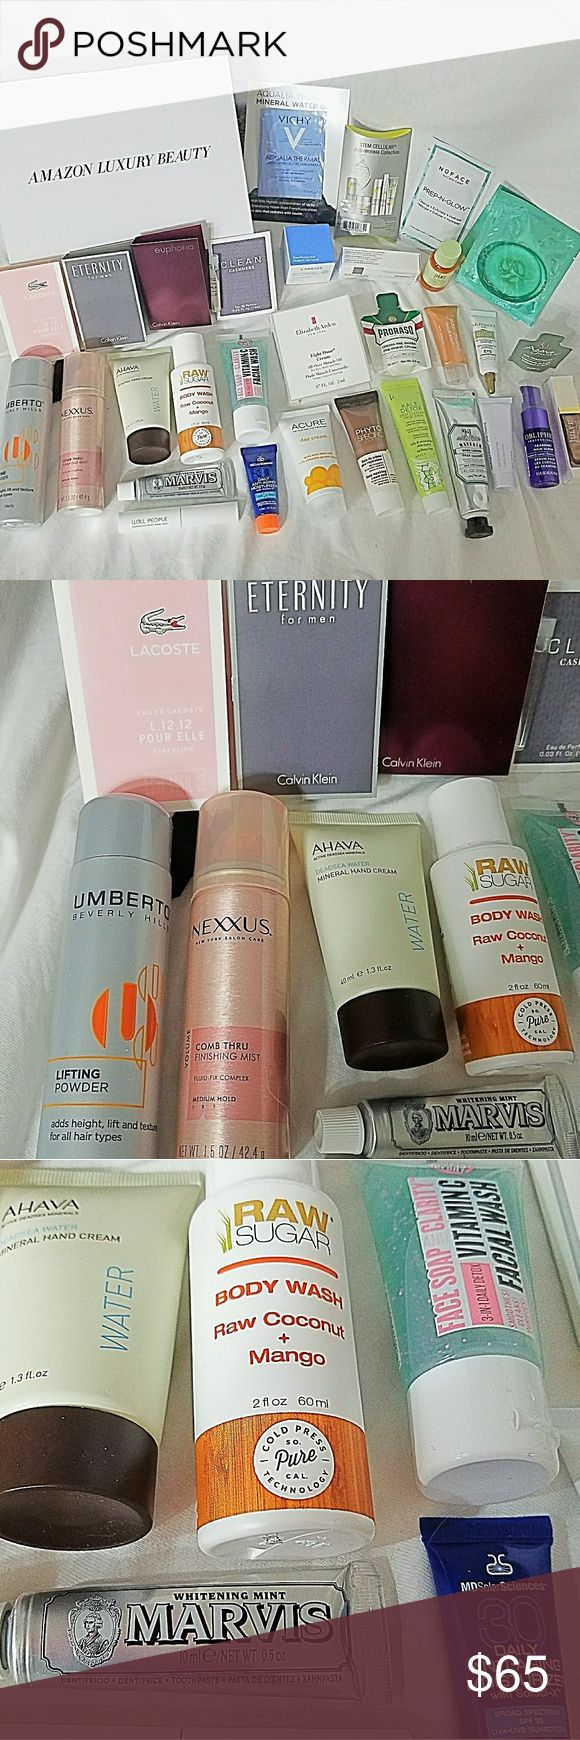 AMAZON LUXURY BEAUTY *nwt* 31pc Samples Item: *Amazon Prime Members Only Limited Edition Beauty Box *All Producrs are Sample or Trial Sizes  *4 Perfume, 1 For Men *11 Facial Cleaners, Tonics, Oils & Wrinkle Washes and Creams *4 Masks, Peels & Eye Products *4 Body Lotion *4 Hair Products *1 Body Wash *1 Mascara *1 Nail Polish *1 Shaving Cream  *1 Tooth Paste  *All Are NEW and Have Never Been Used  * I will List Some of the Brands in Comments! *  Check my othee listings as I'll be adding…